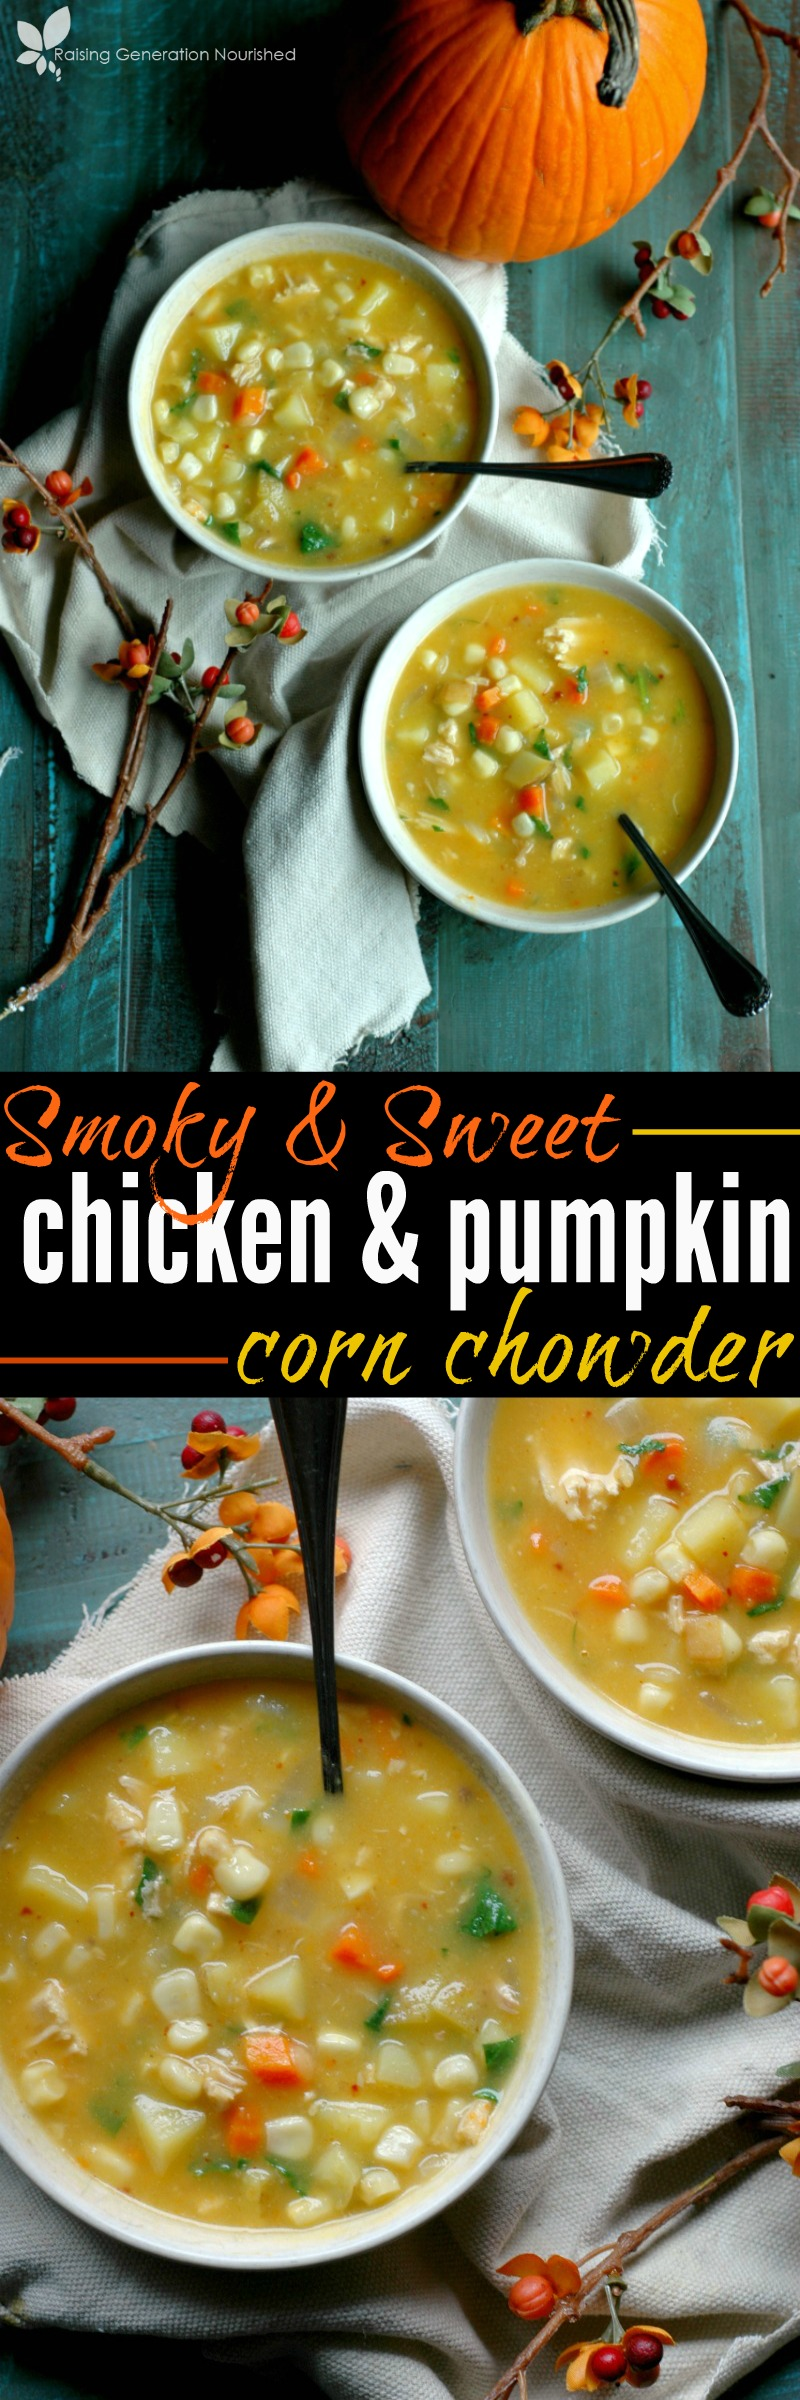 Smoky & Sweet Chicken & Pumpkin Corn Chowder :: Creamy and comforting meets the savory heat of chipotle in this sweet and smoky chicken and pumpkin corn chowder!